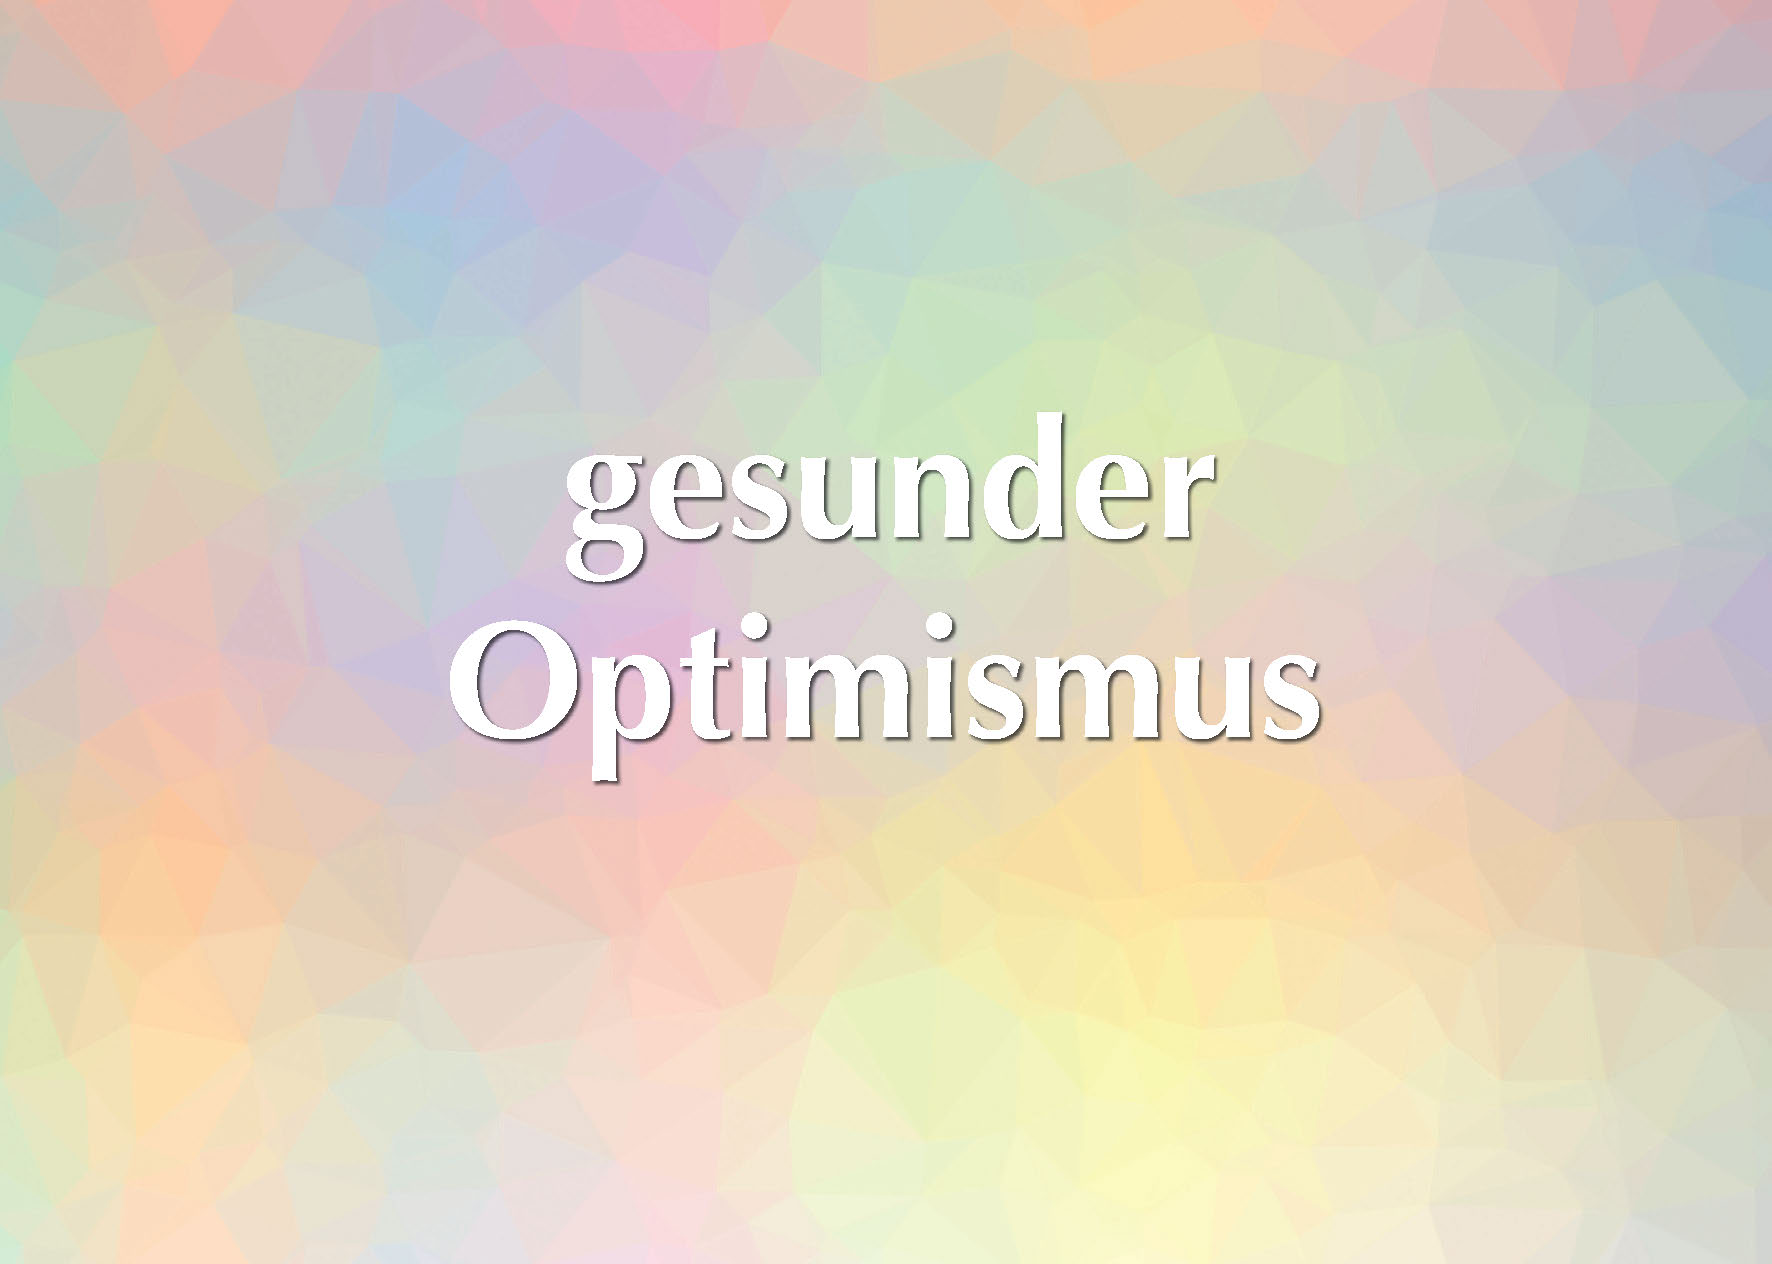 gesunder Optimismus